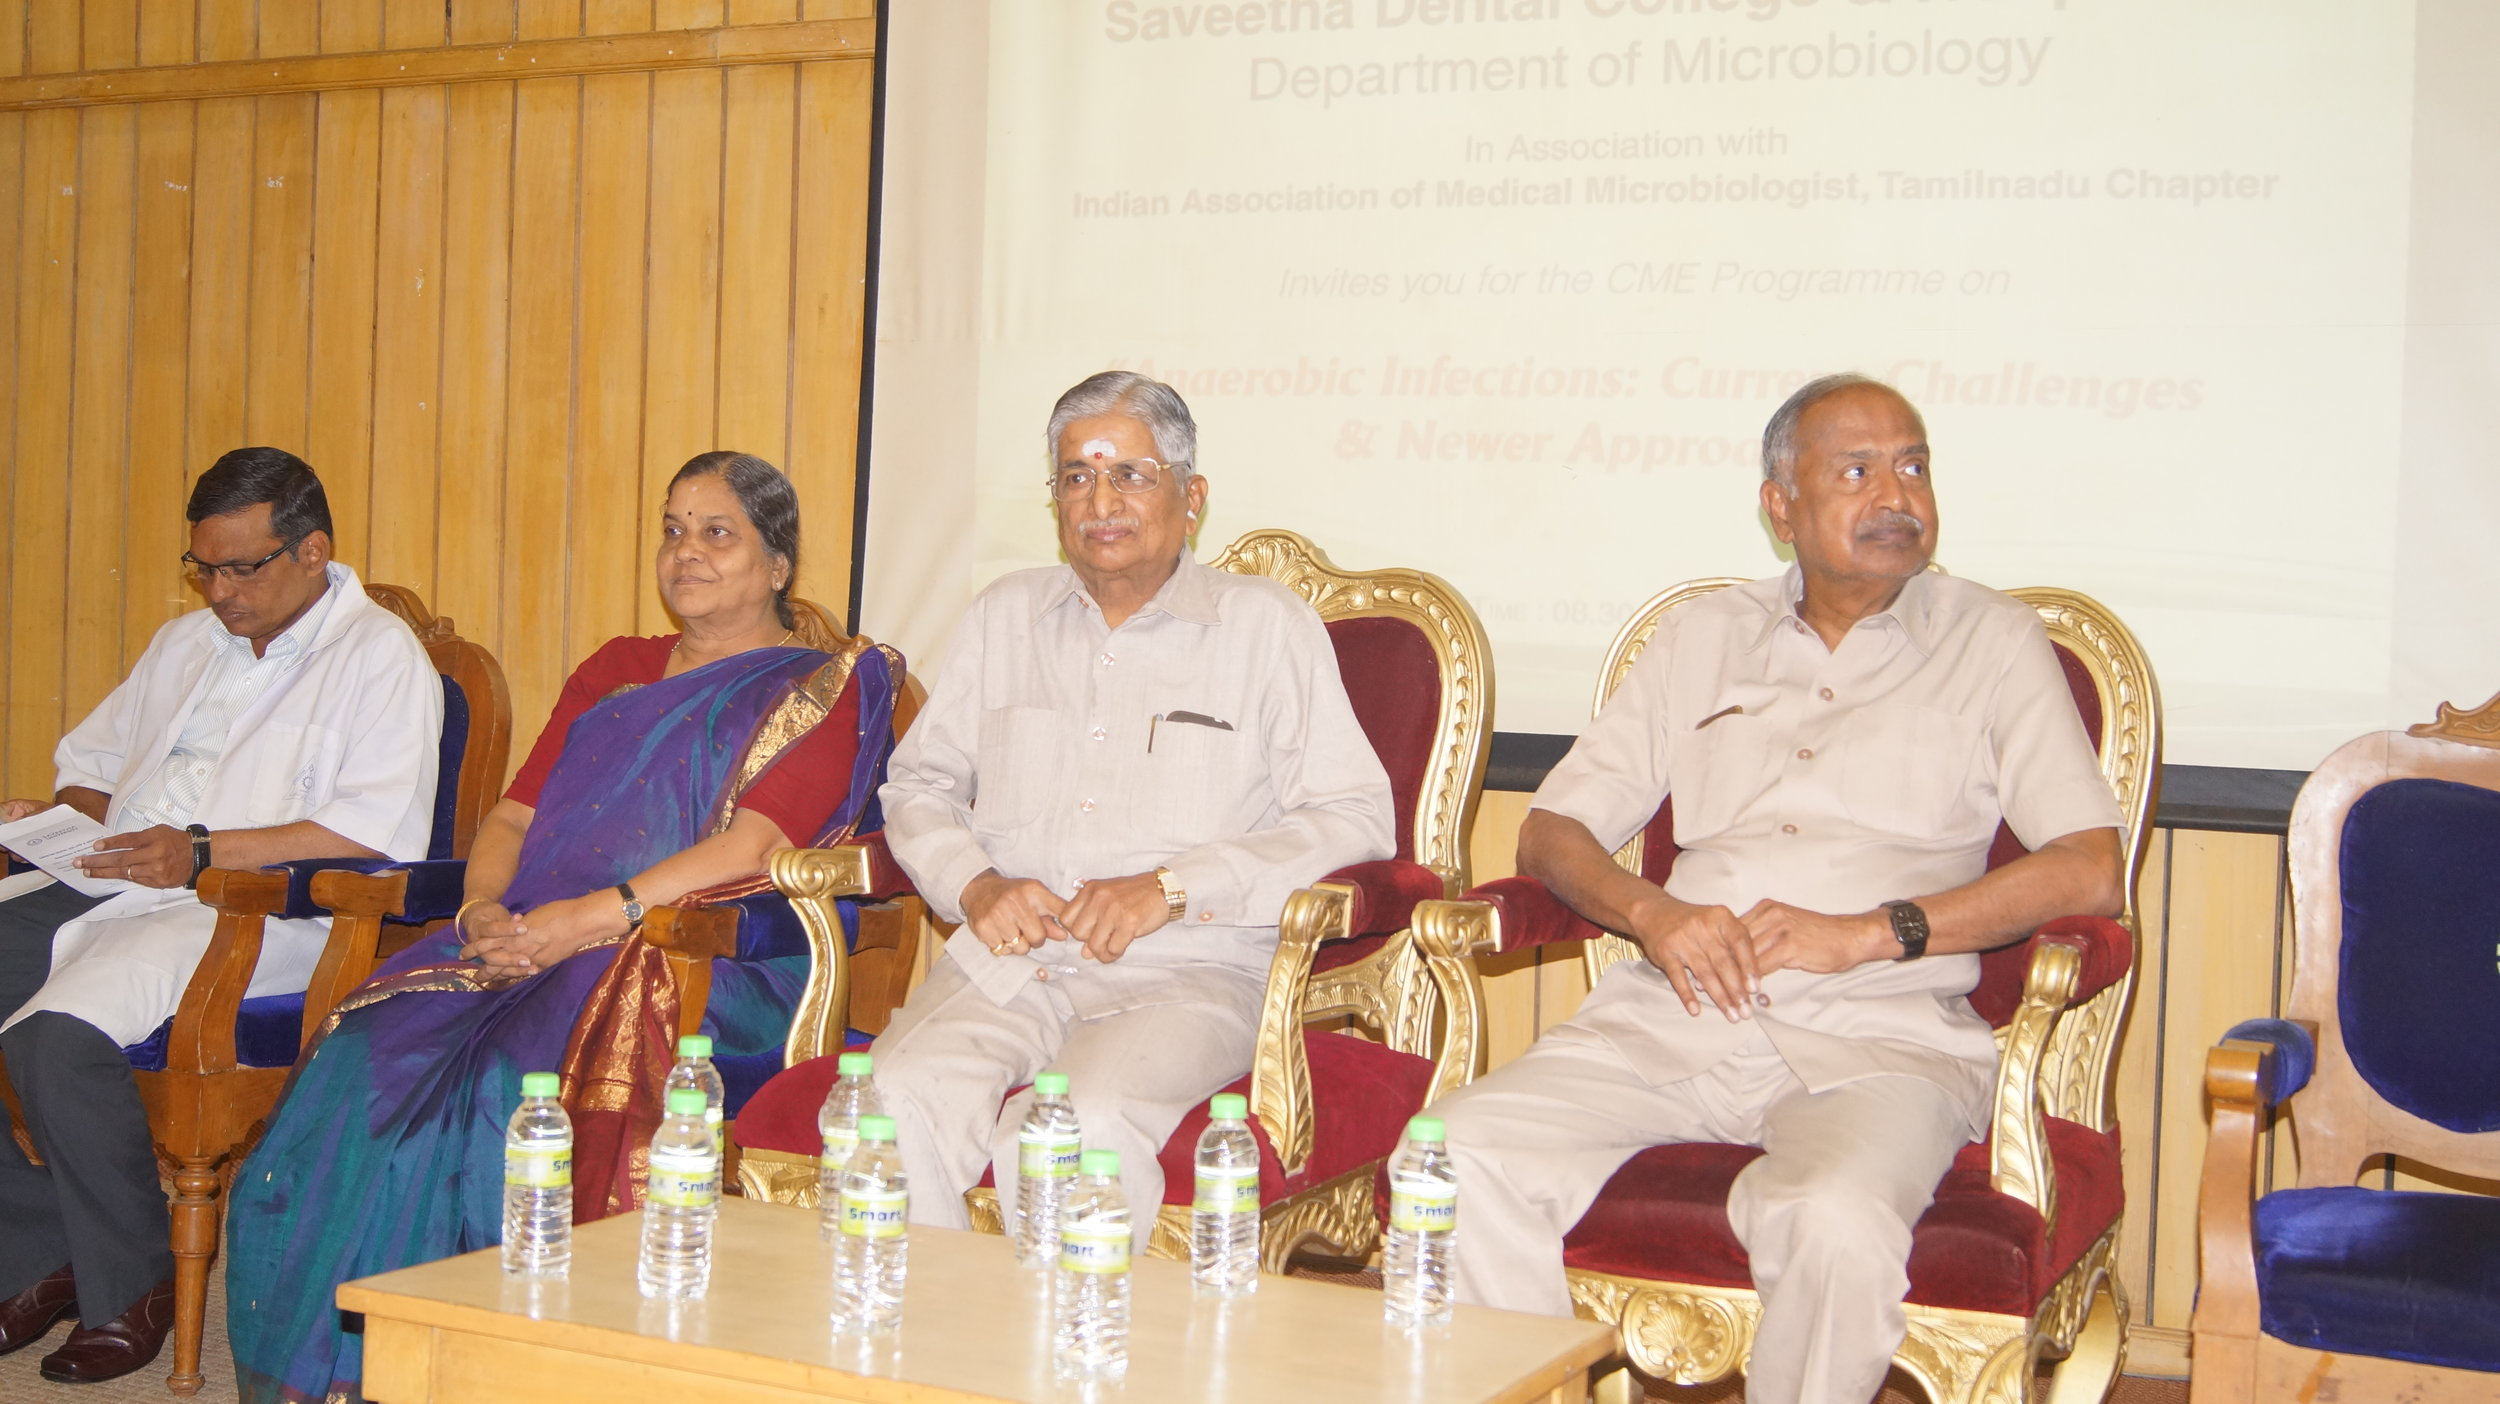 """CME programme on """"Anaerobic infections: Current Challenges and Newer Approaches"""", IAMM Tamilnadu chapter meet"""